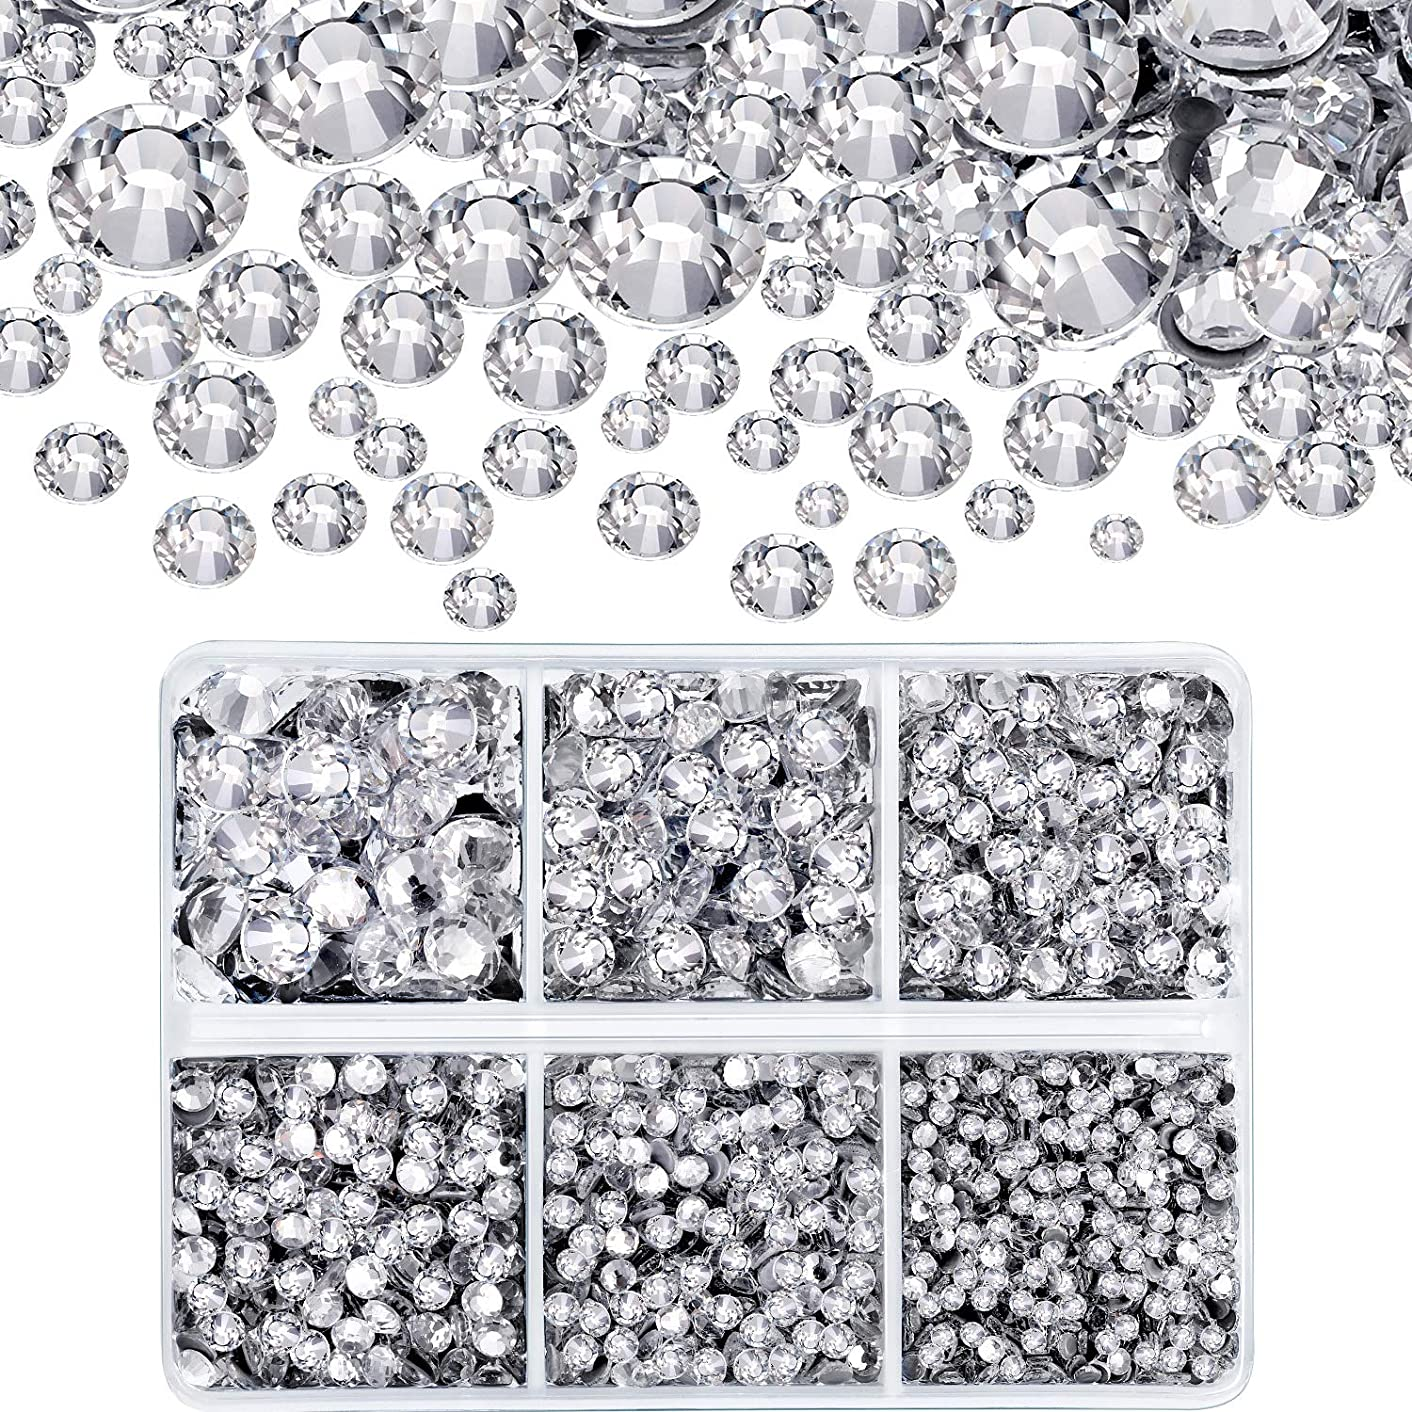 4000 Pieces Mixed Size Hot Fix Round Crystals Gems Glass Stones Hotfix Flat Back Rhinestones (Clear Color)